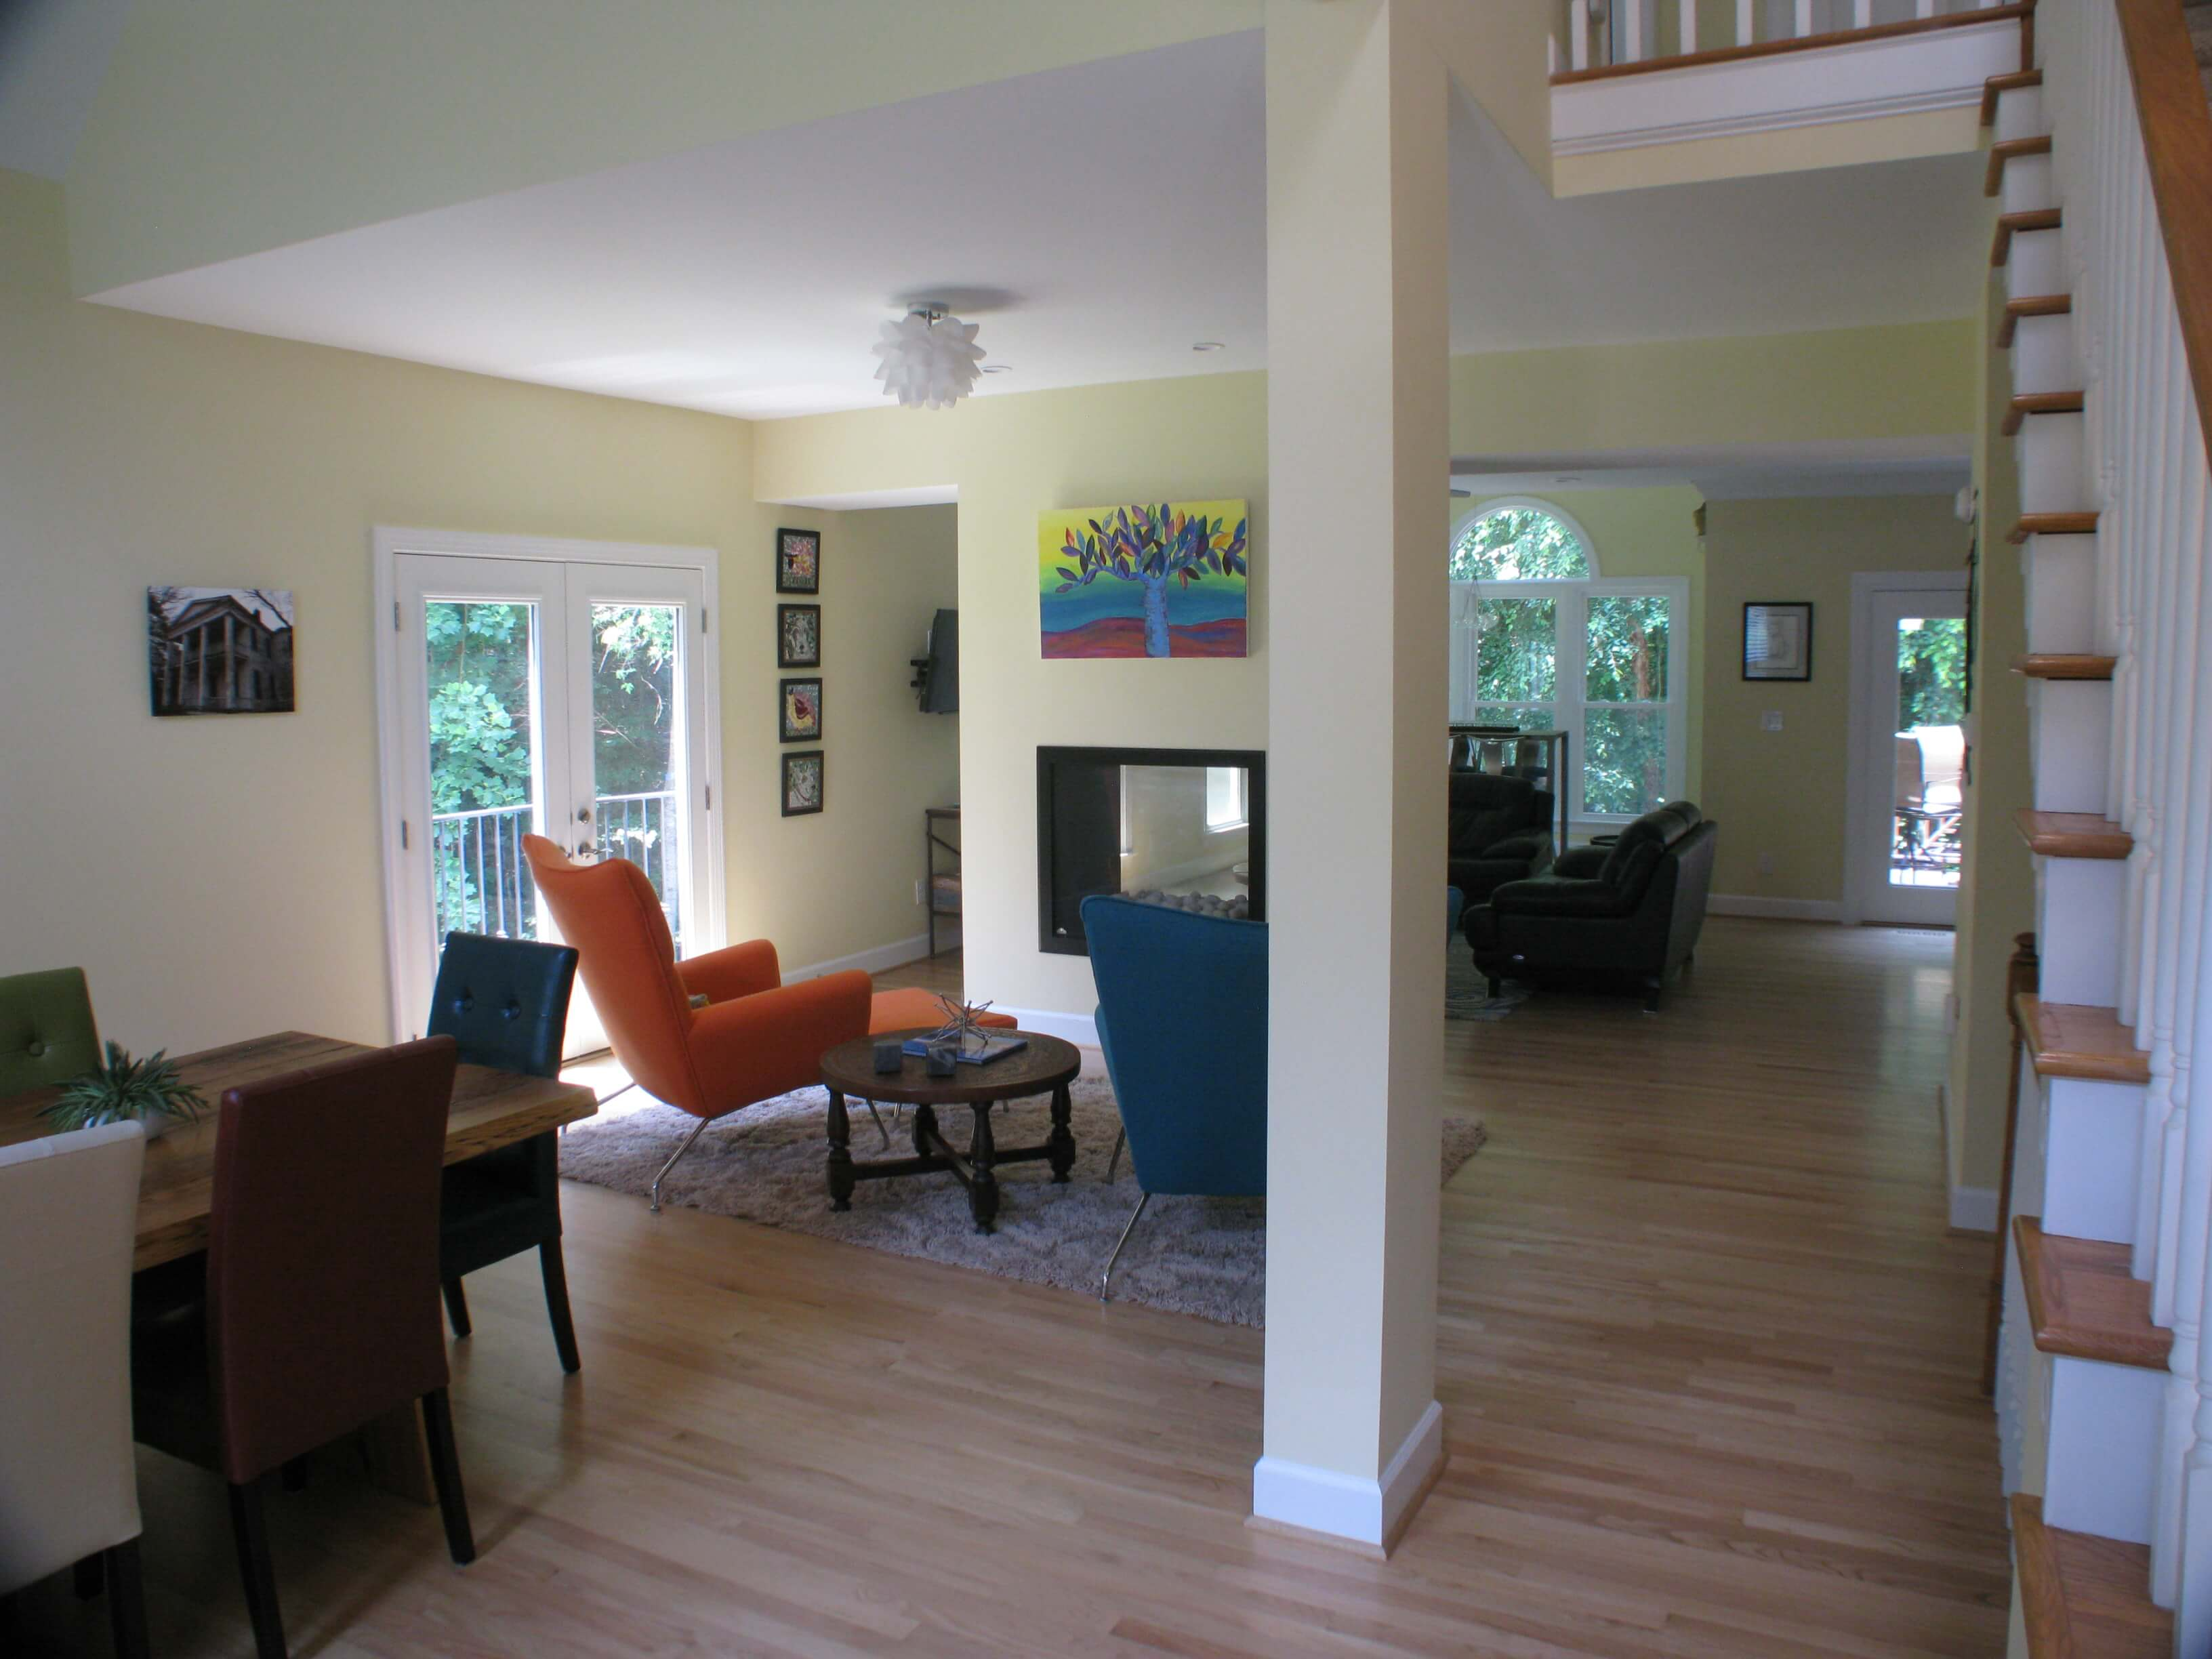 Apex Attic Finishing Remodeling Home Remodeling Company In Apex Core Remodeling Group Inc